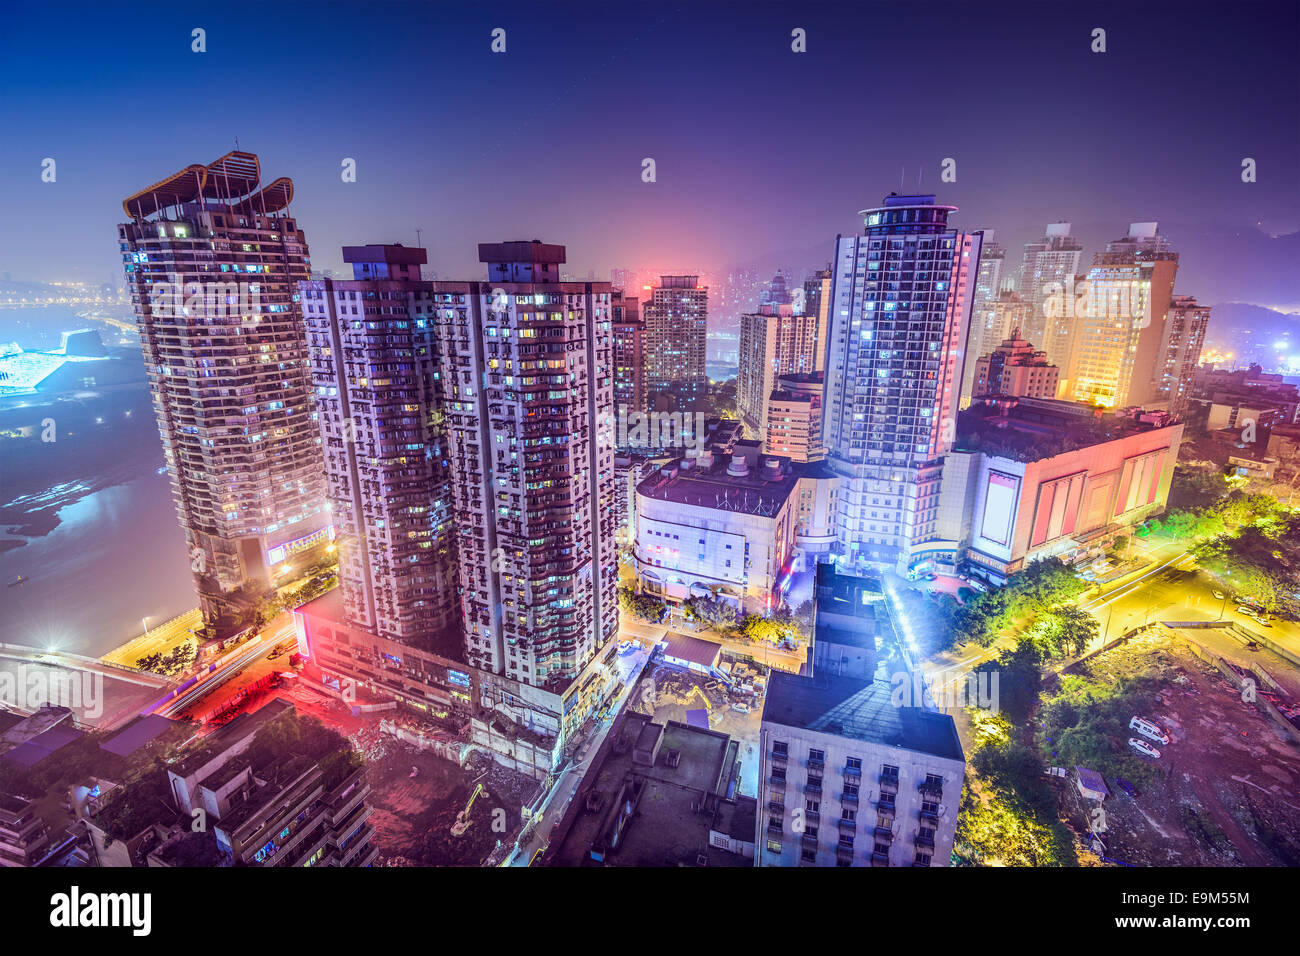 Chongqing, China nighttime cityscape in the Jiefangbei District. - Stock Image